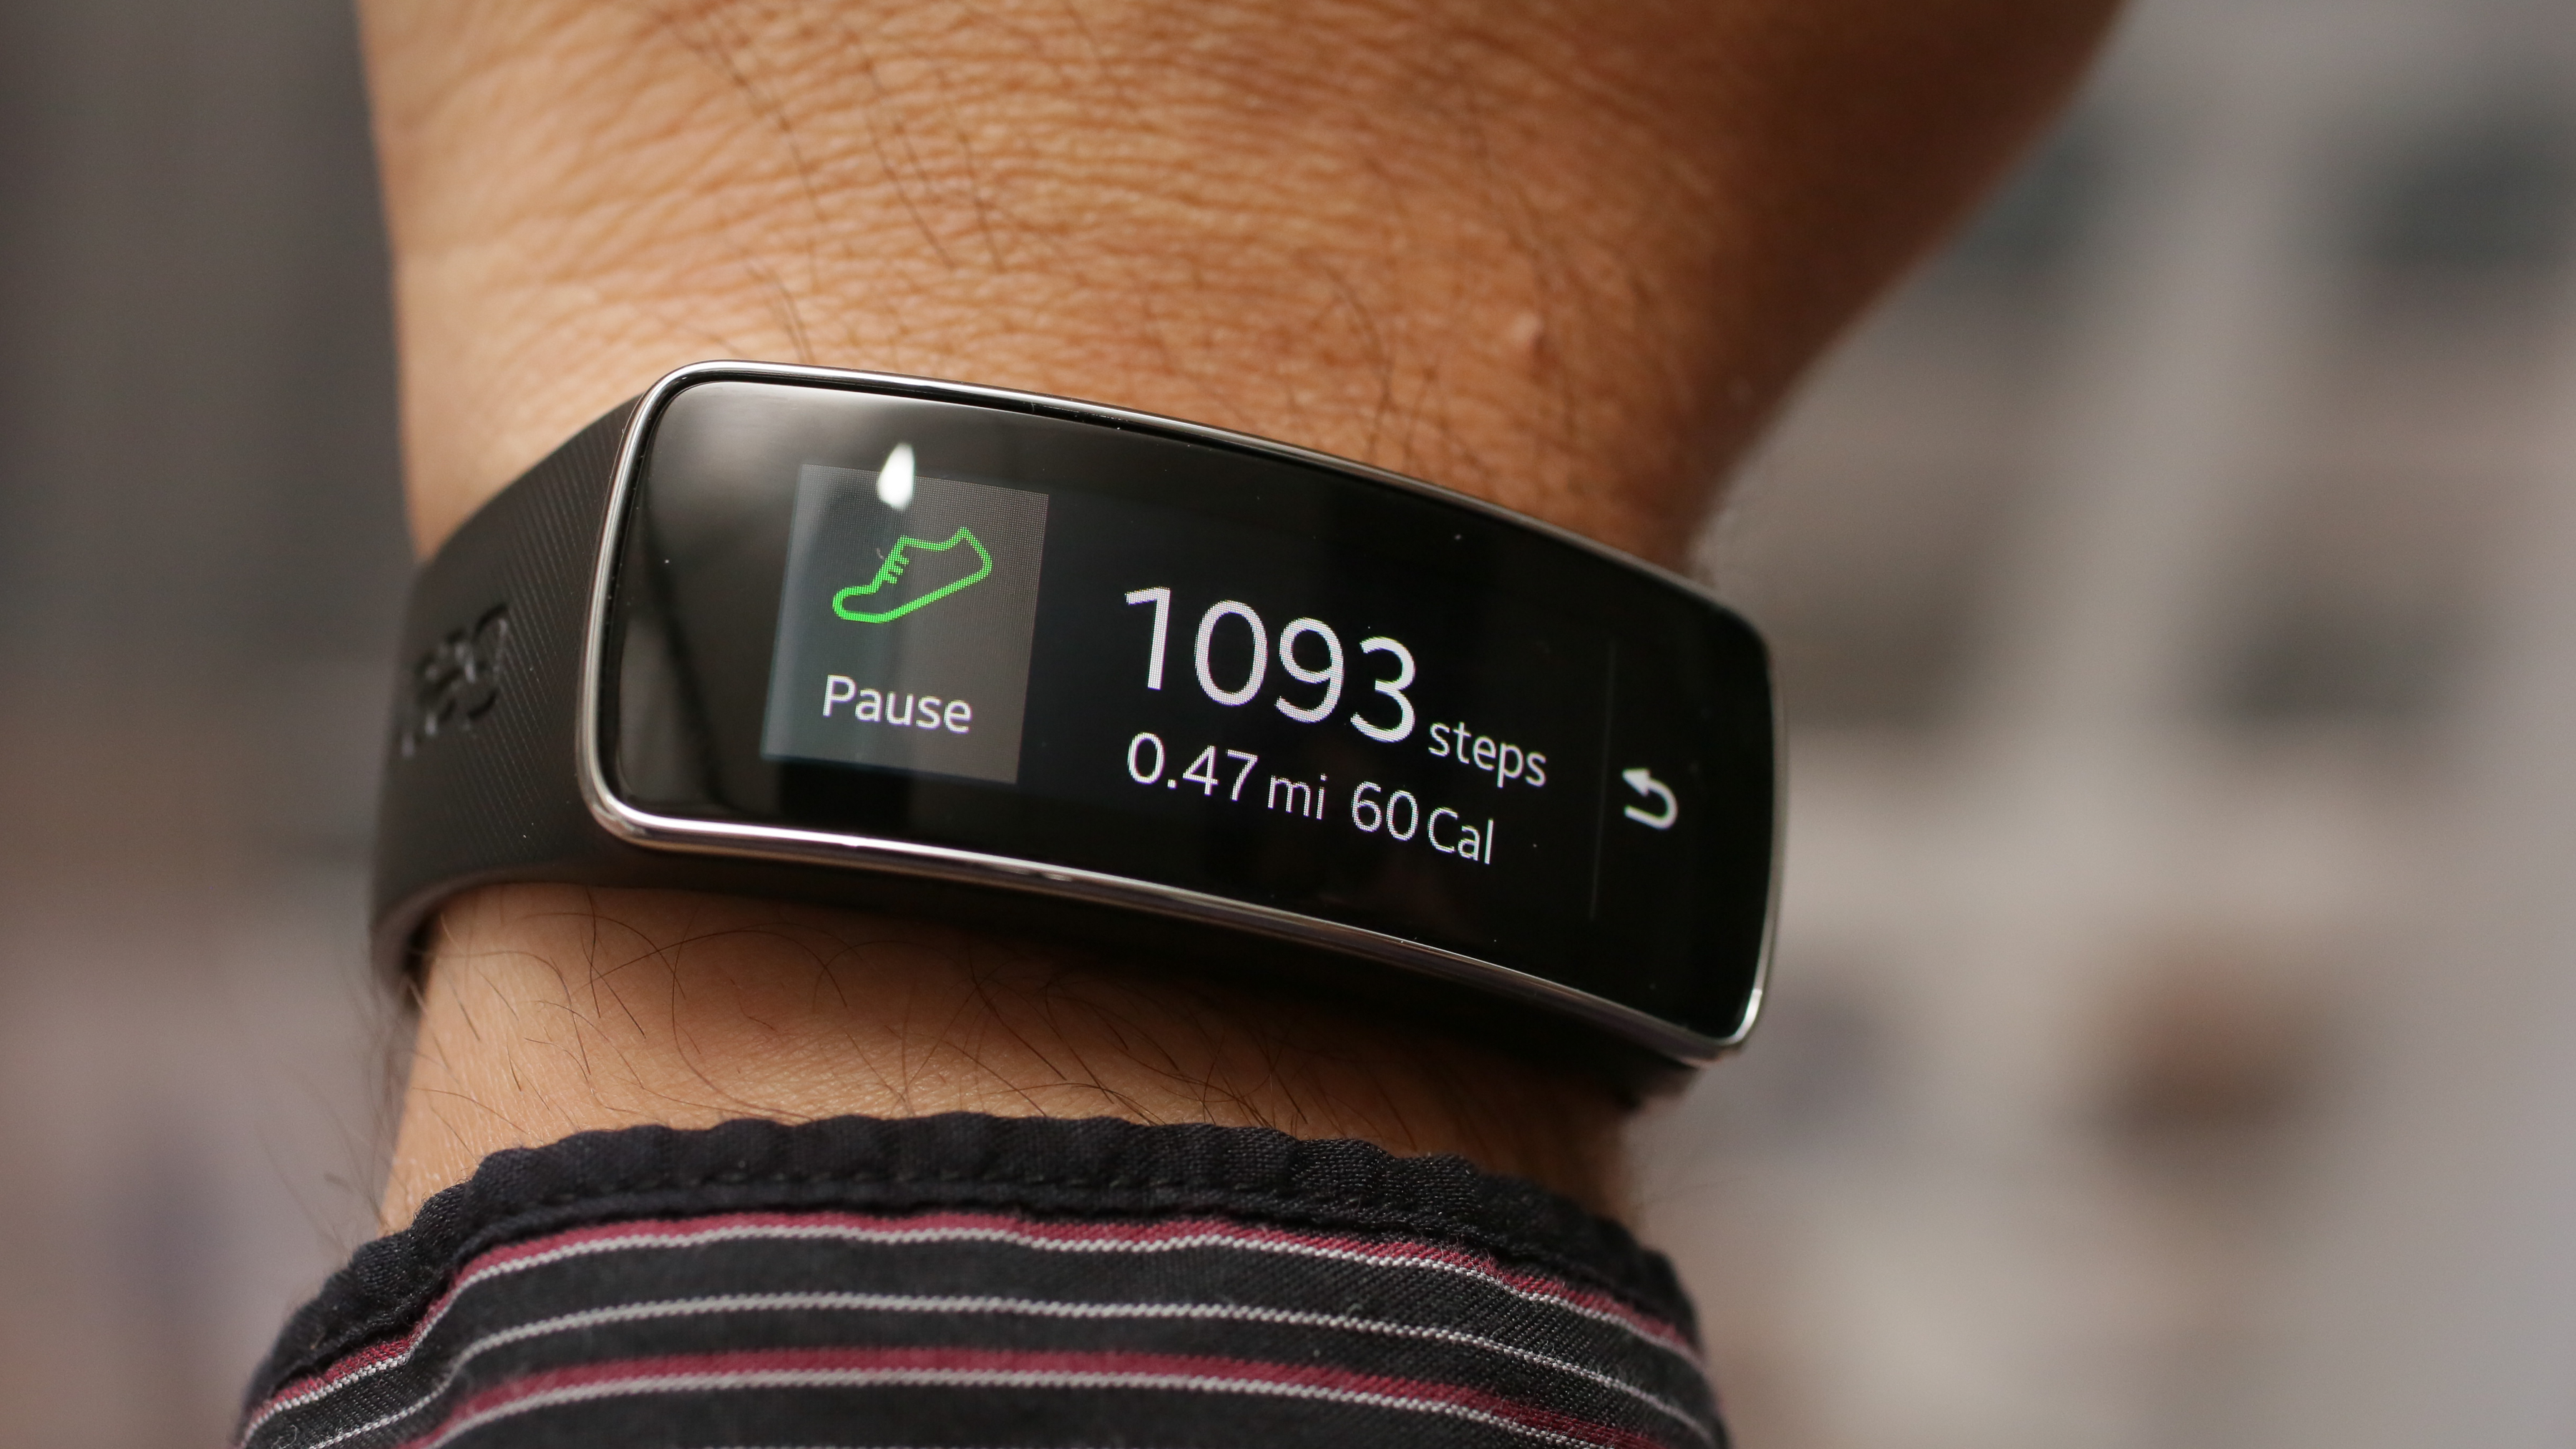 samsung-galaxy-gear-fit-product-photos-26.jpg